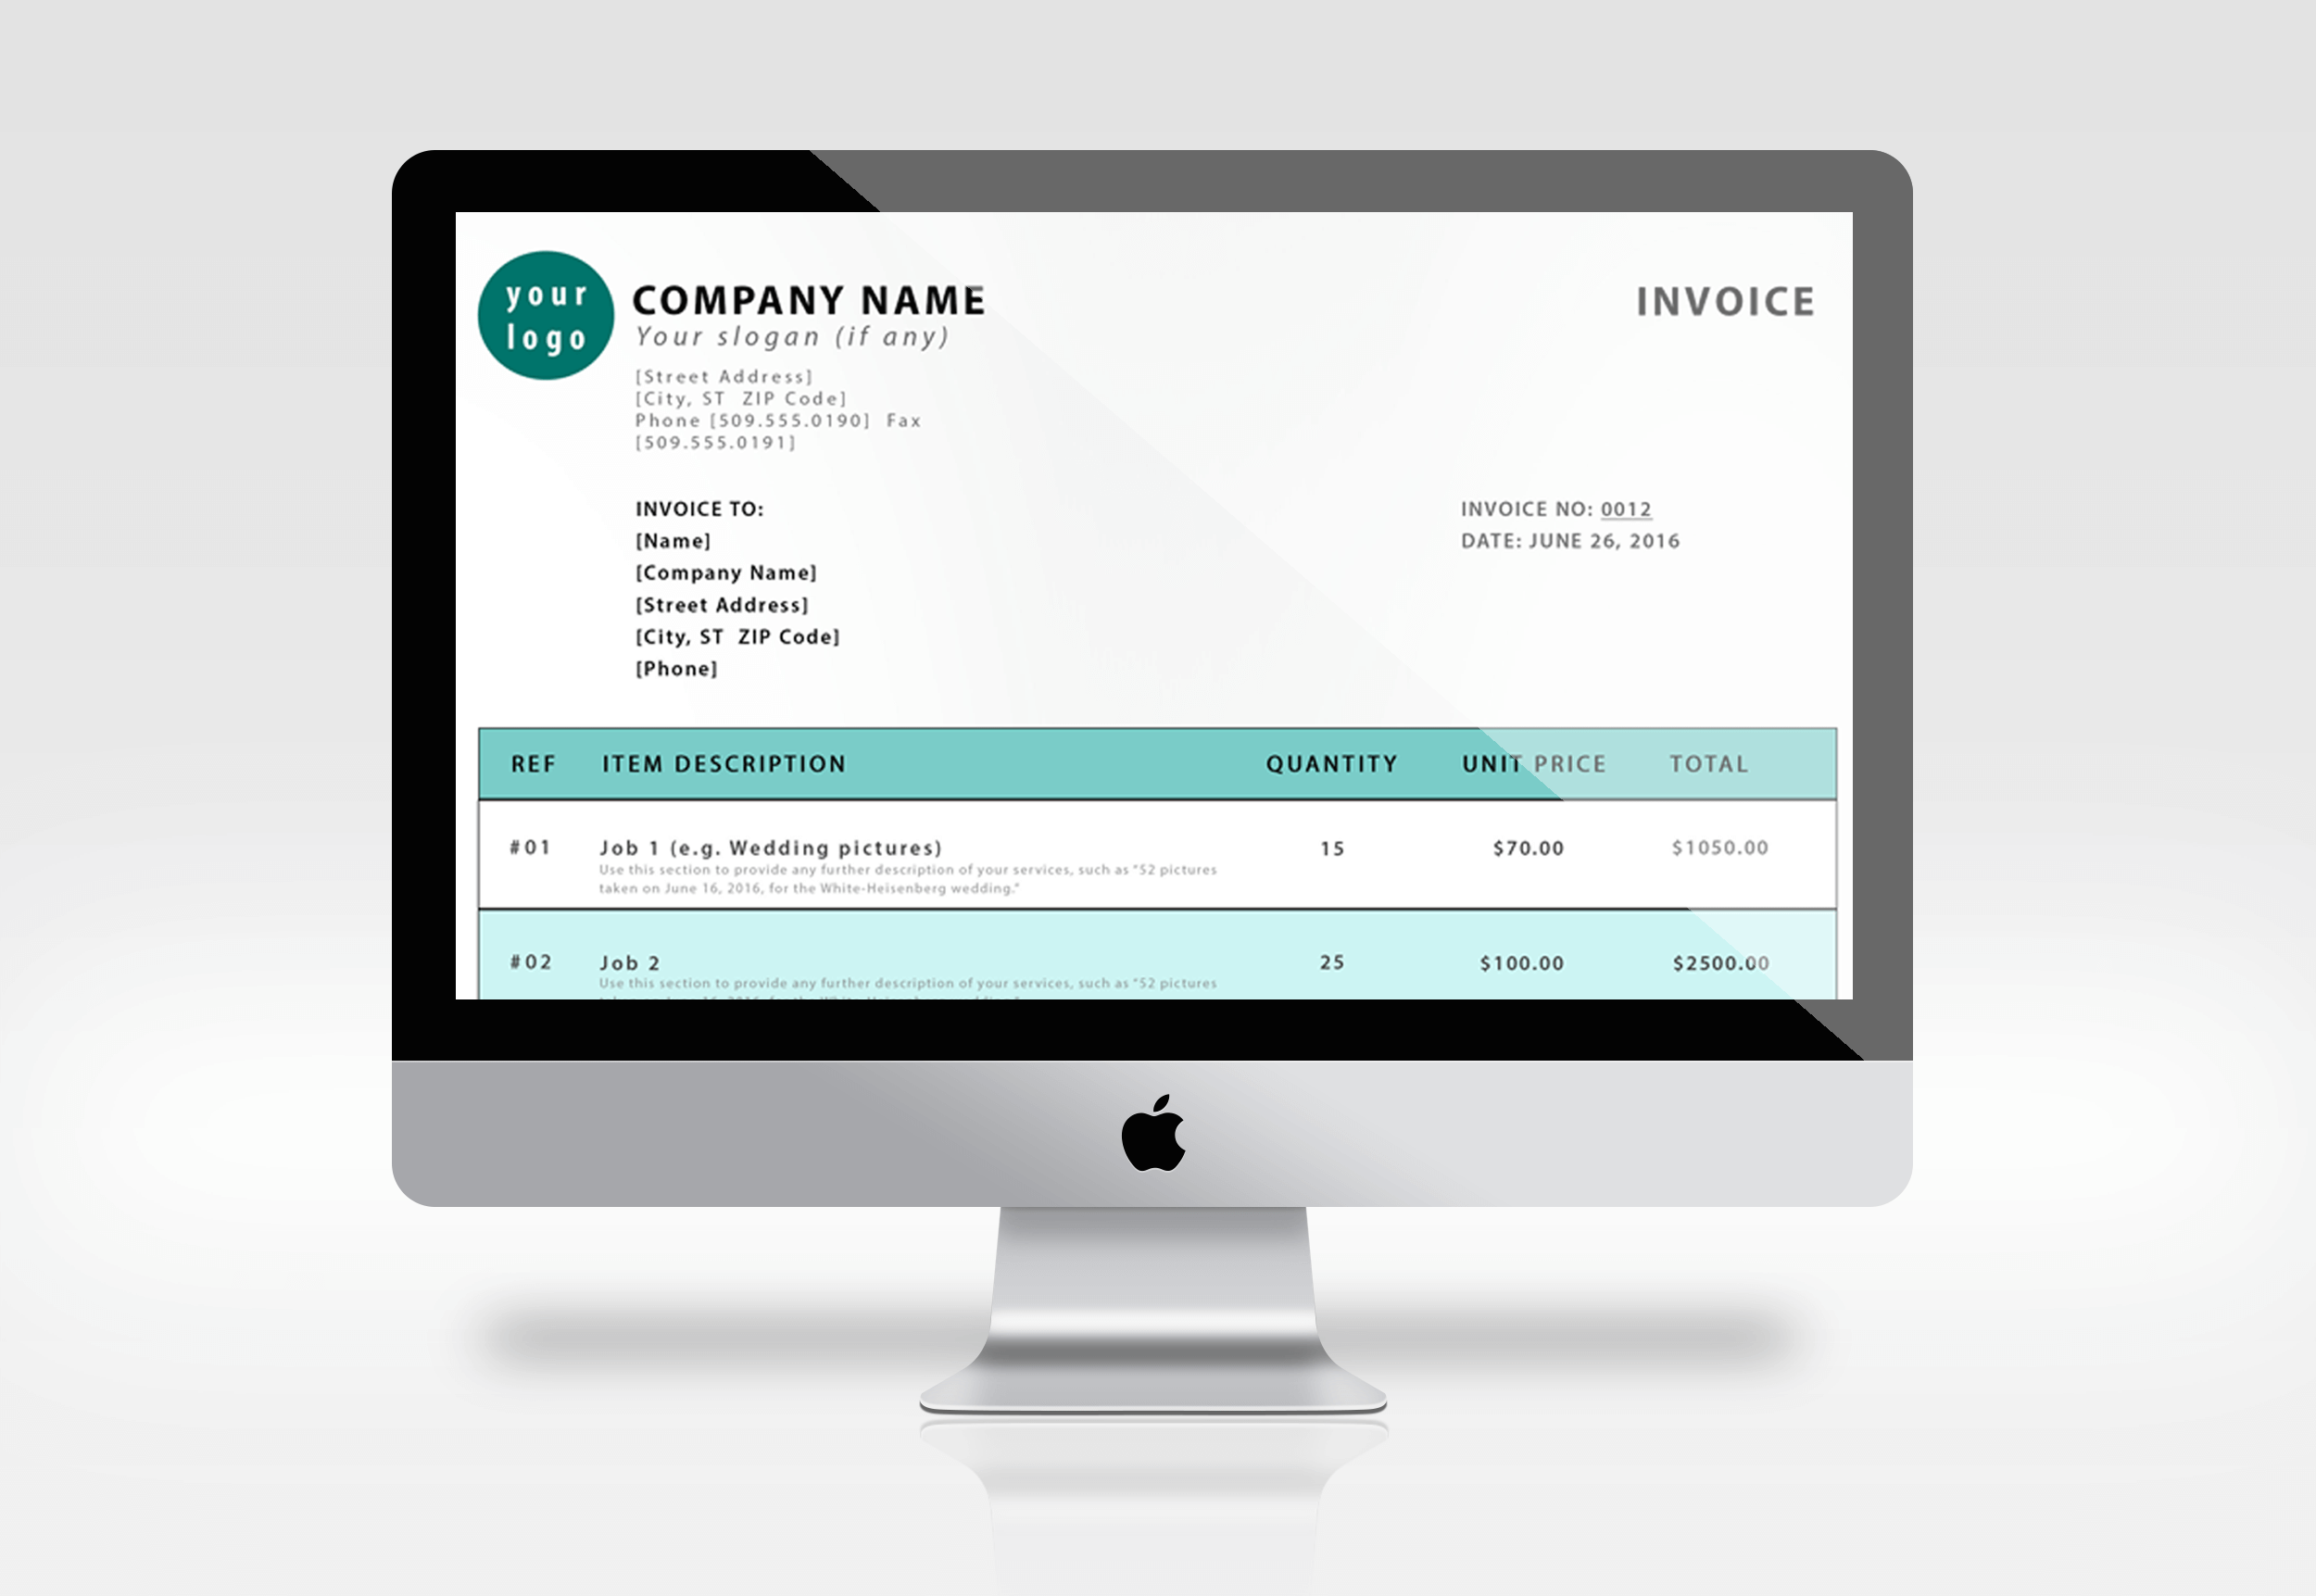 Free New GIMP Invoice Templates InvoiceBerry Blog - Make your own invoice template free